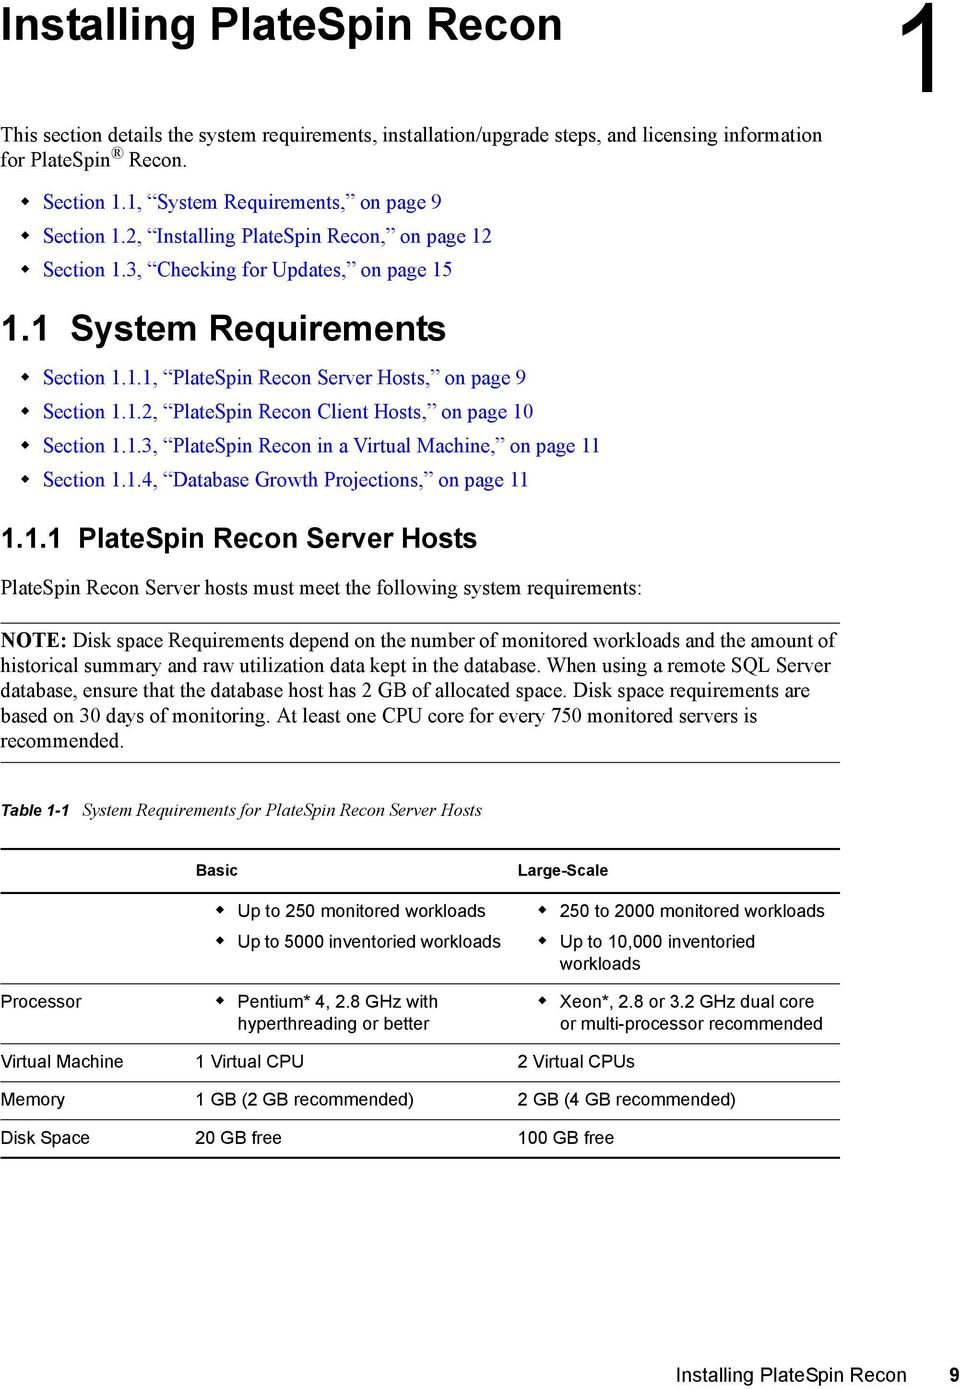 1.2, PlateSpin Recon Client Hosts, on page 10 Section 1.1.3, PlateSpin Recon in a Virtual Machine, on page 11 Section 1.1.4, Database Growth Projections, on page 11 1.1.1 PlateSpin Recon Server Hosts